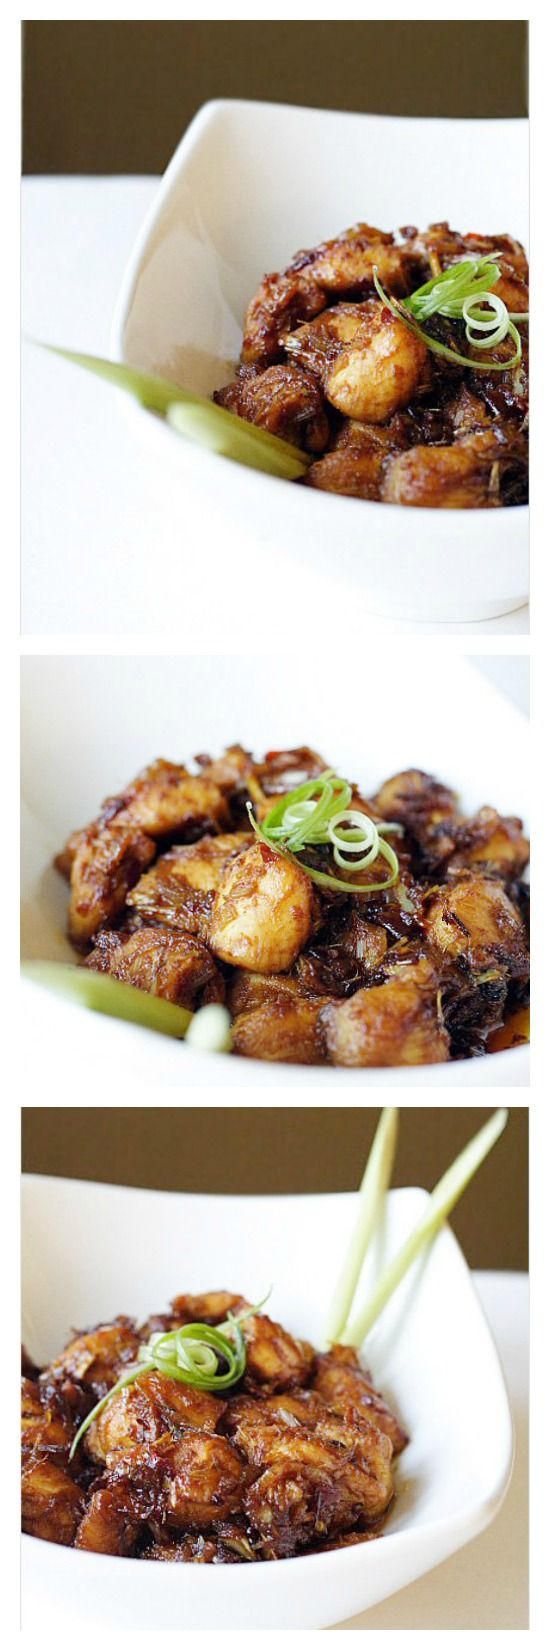 Lemongrass Chicken Recipe. Simply the most aromatic and delicious Asian chicken dish ever. So easy to make and no-fuss | http://rasamalaysia.com